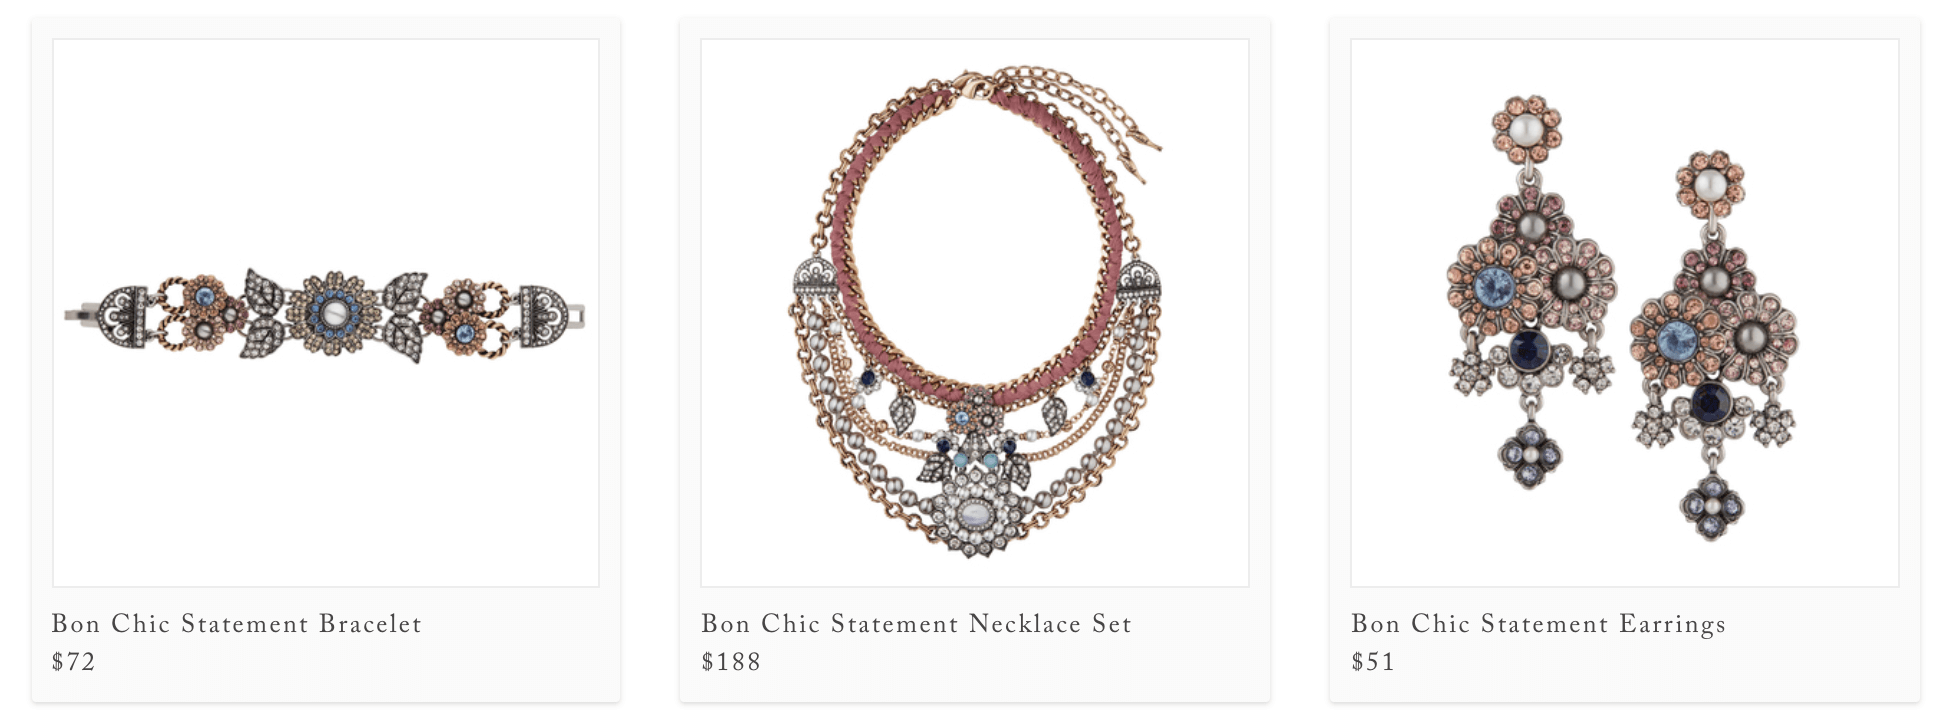 Chloe Isabel Jewelry products